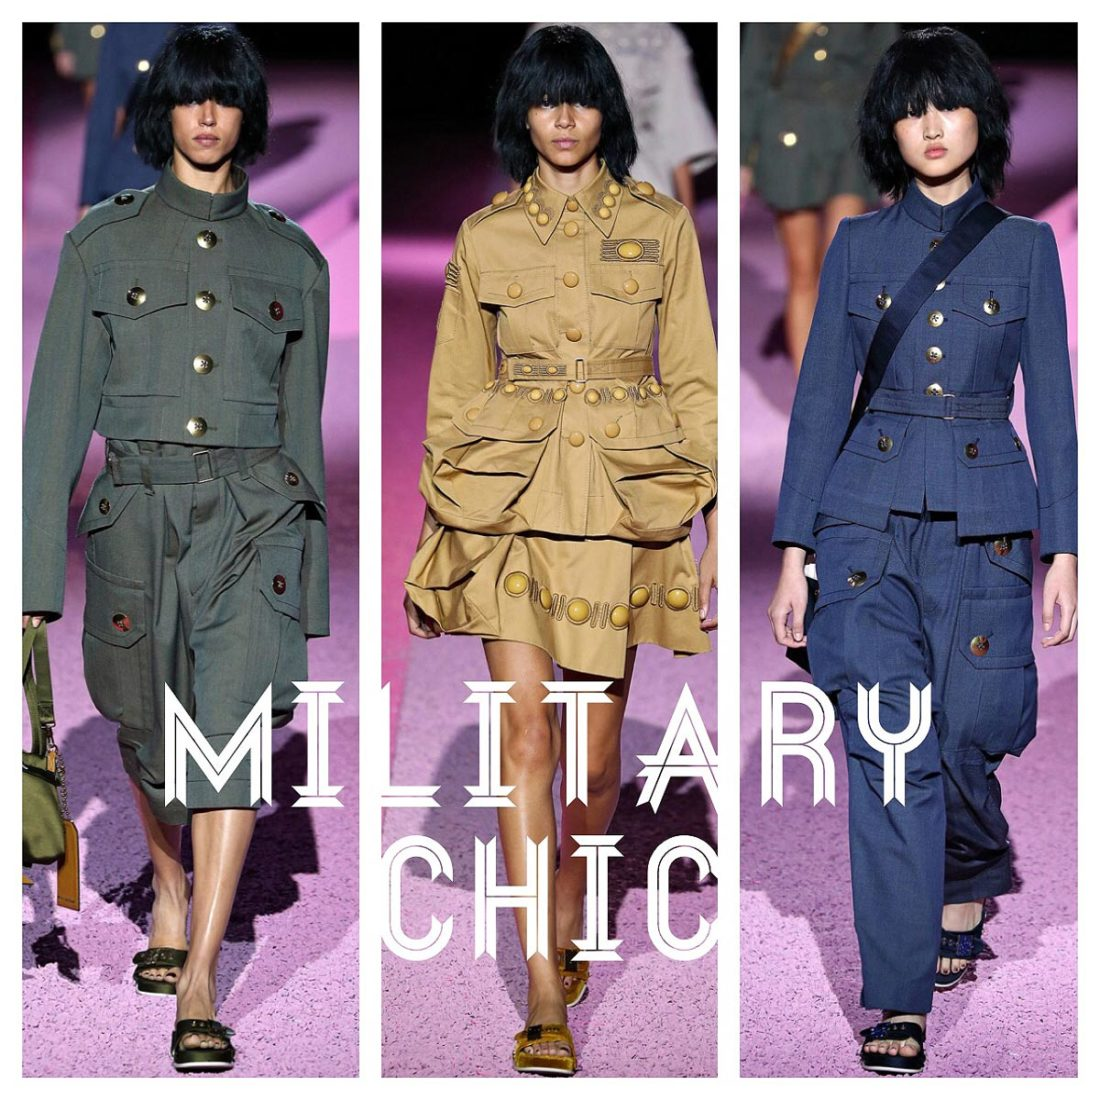 Spring 2015 Trend: MilitaryChic